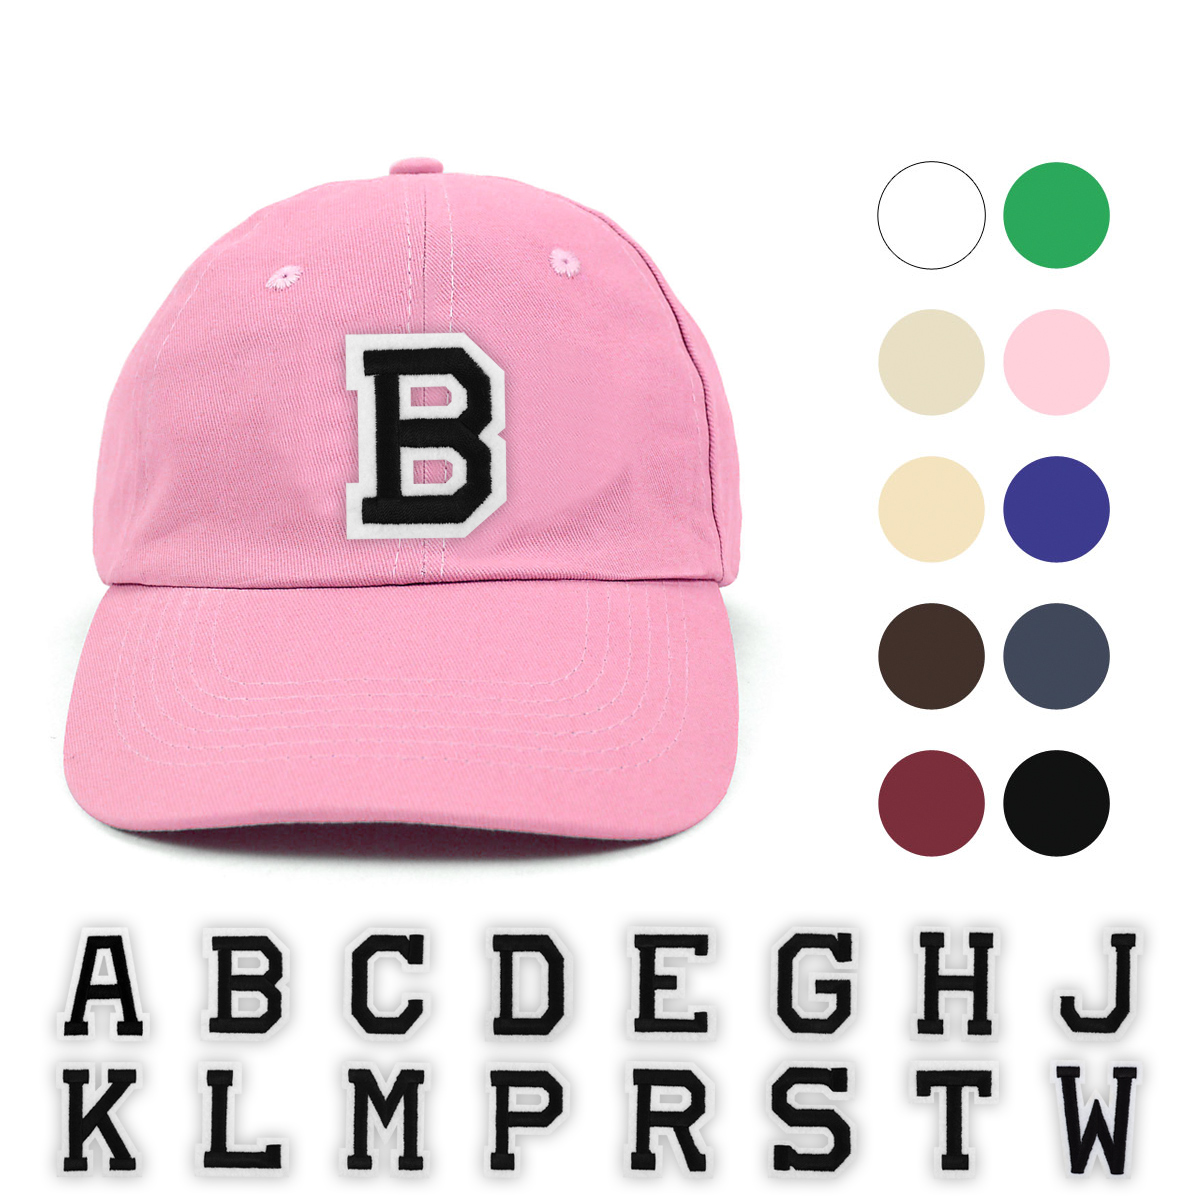 ''Varsity Letter Initials Traditional Cotton Twill Embroidery Patch Blank BASEBALL Cap, Hat''